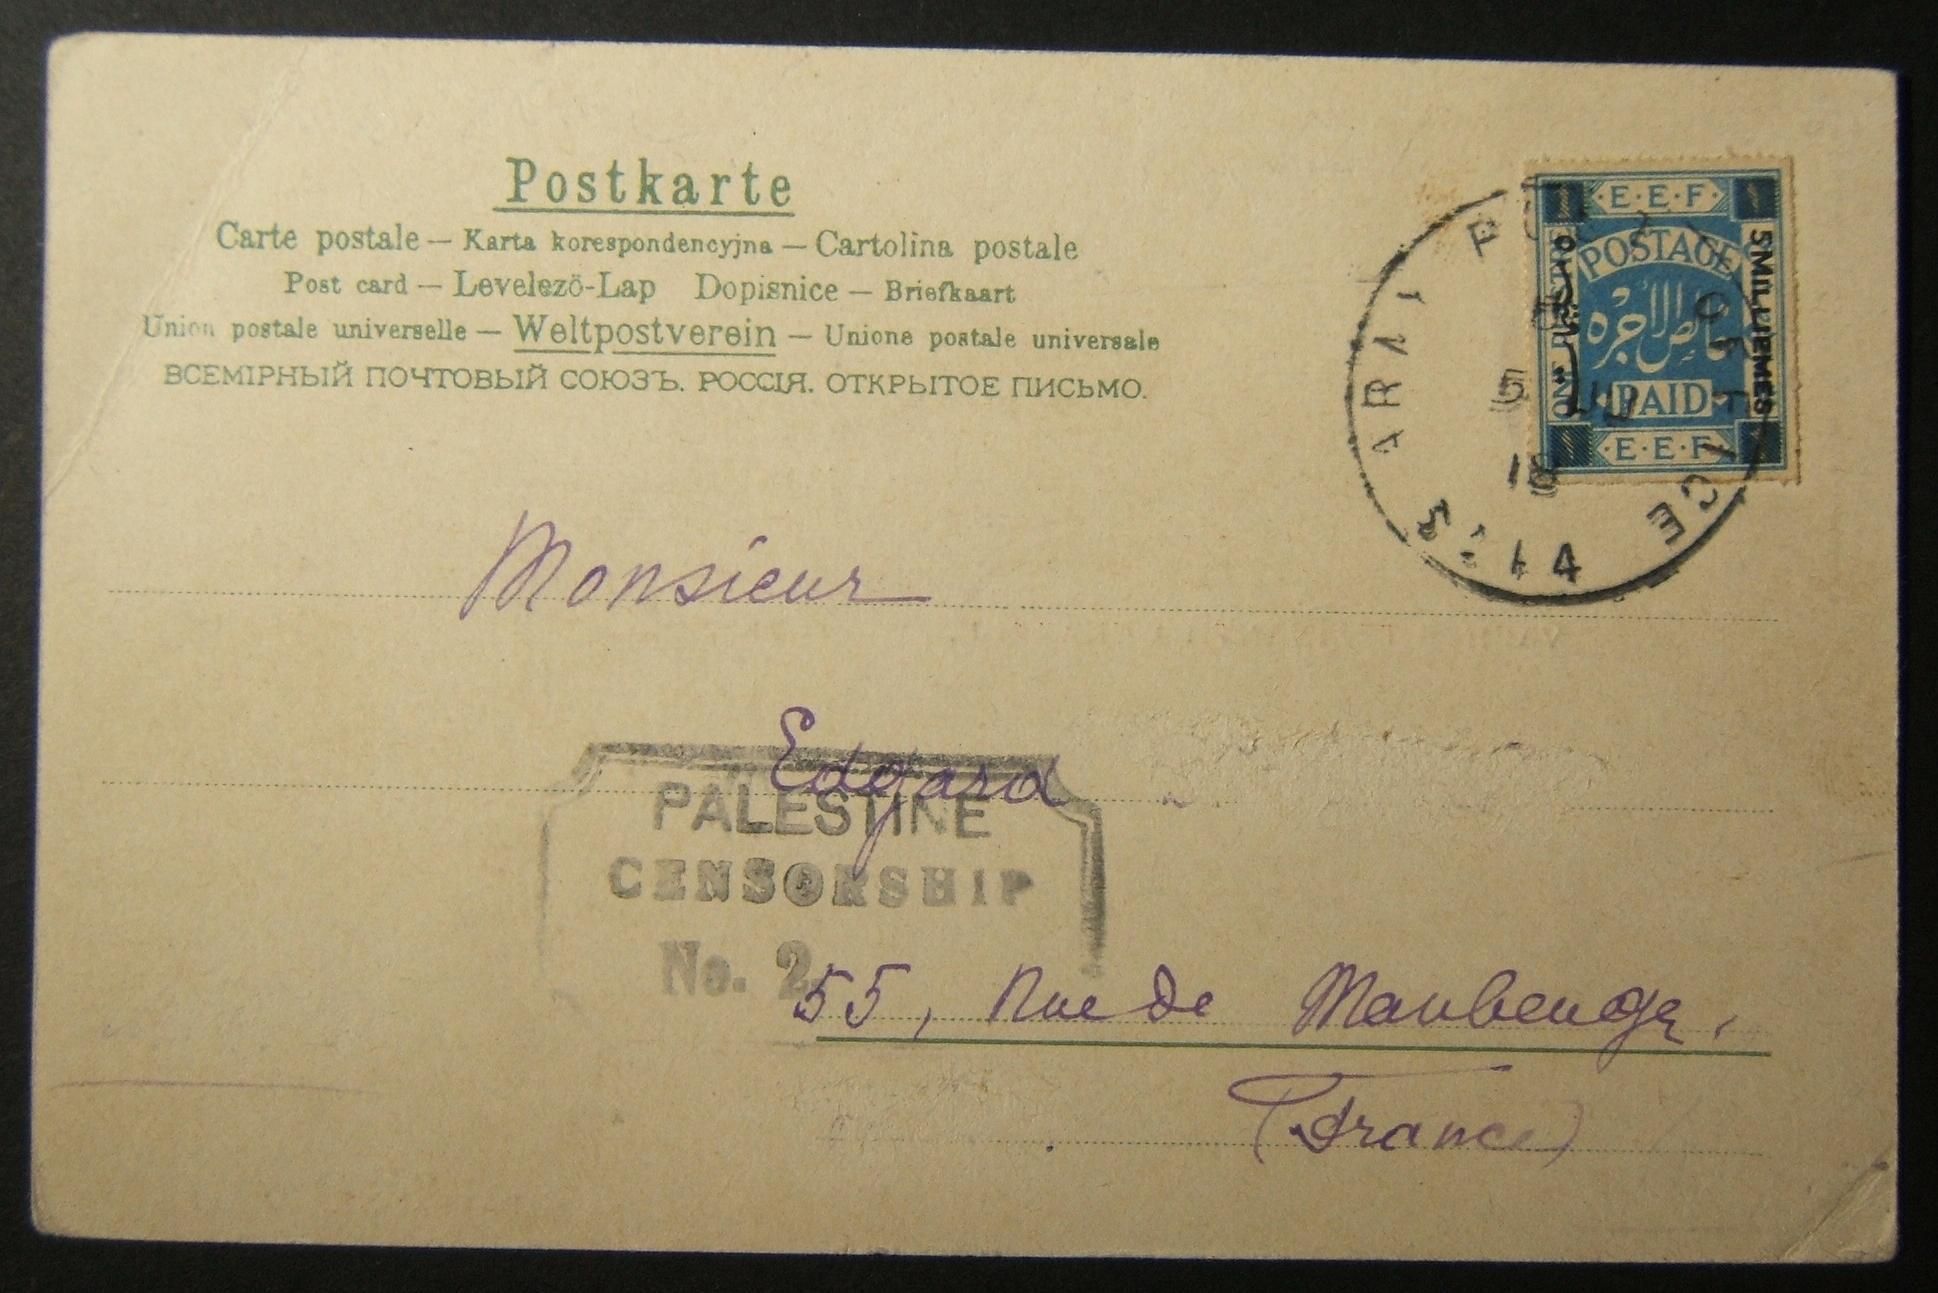 Mandate stamps / period 2 'blues': 5 JU 18 ppc of Arabs by Kattan of Jaffa ex APO SZ 44 (JAFFA) to FRANCE franked at period 5m PC rate using pair 'Blues 4' 5m on 1 Pia Ba4 tied by